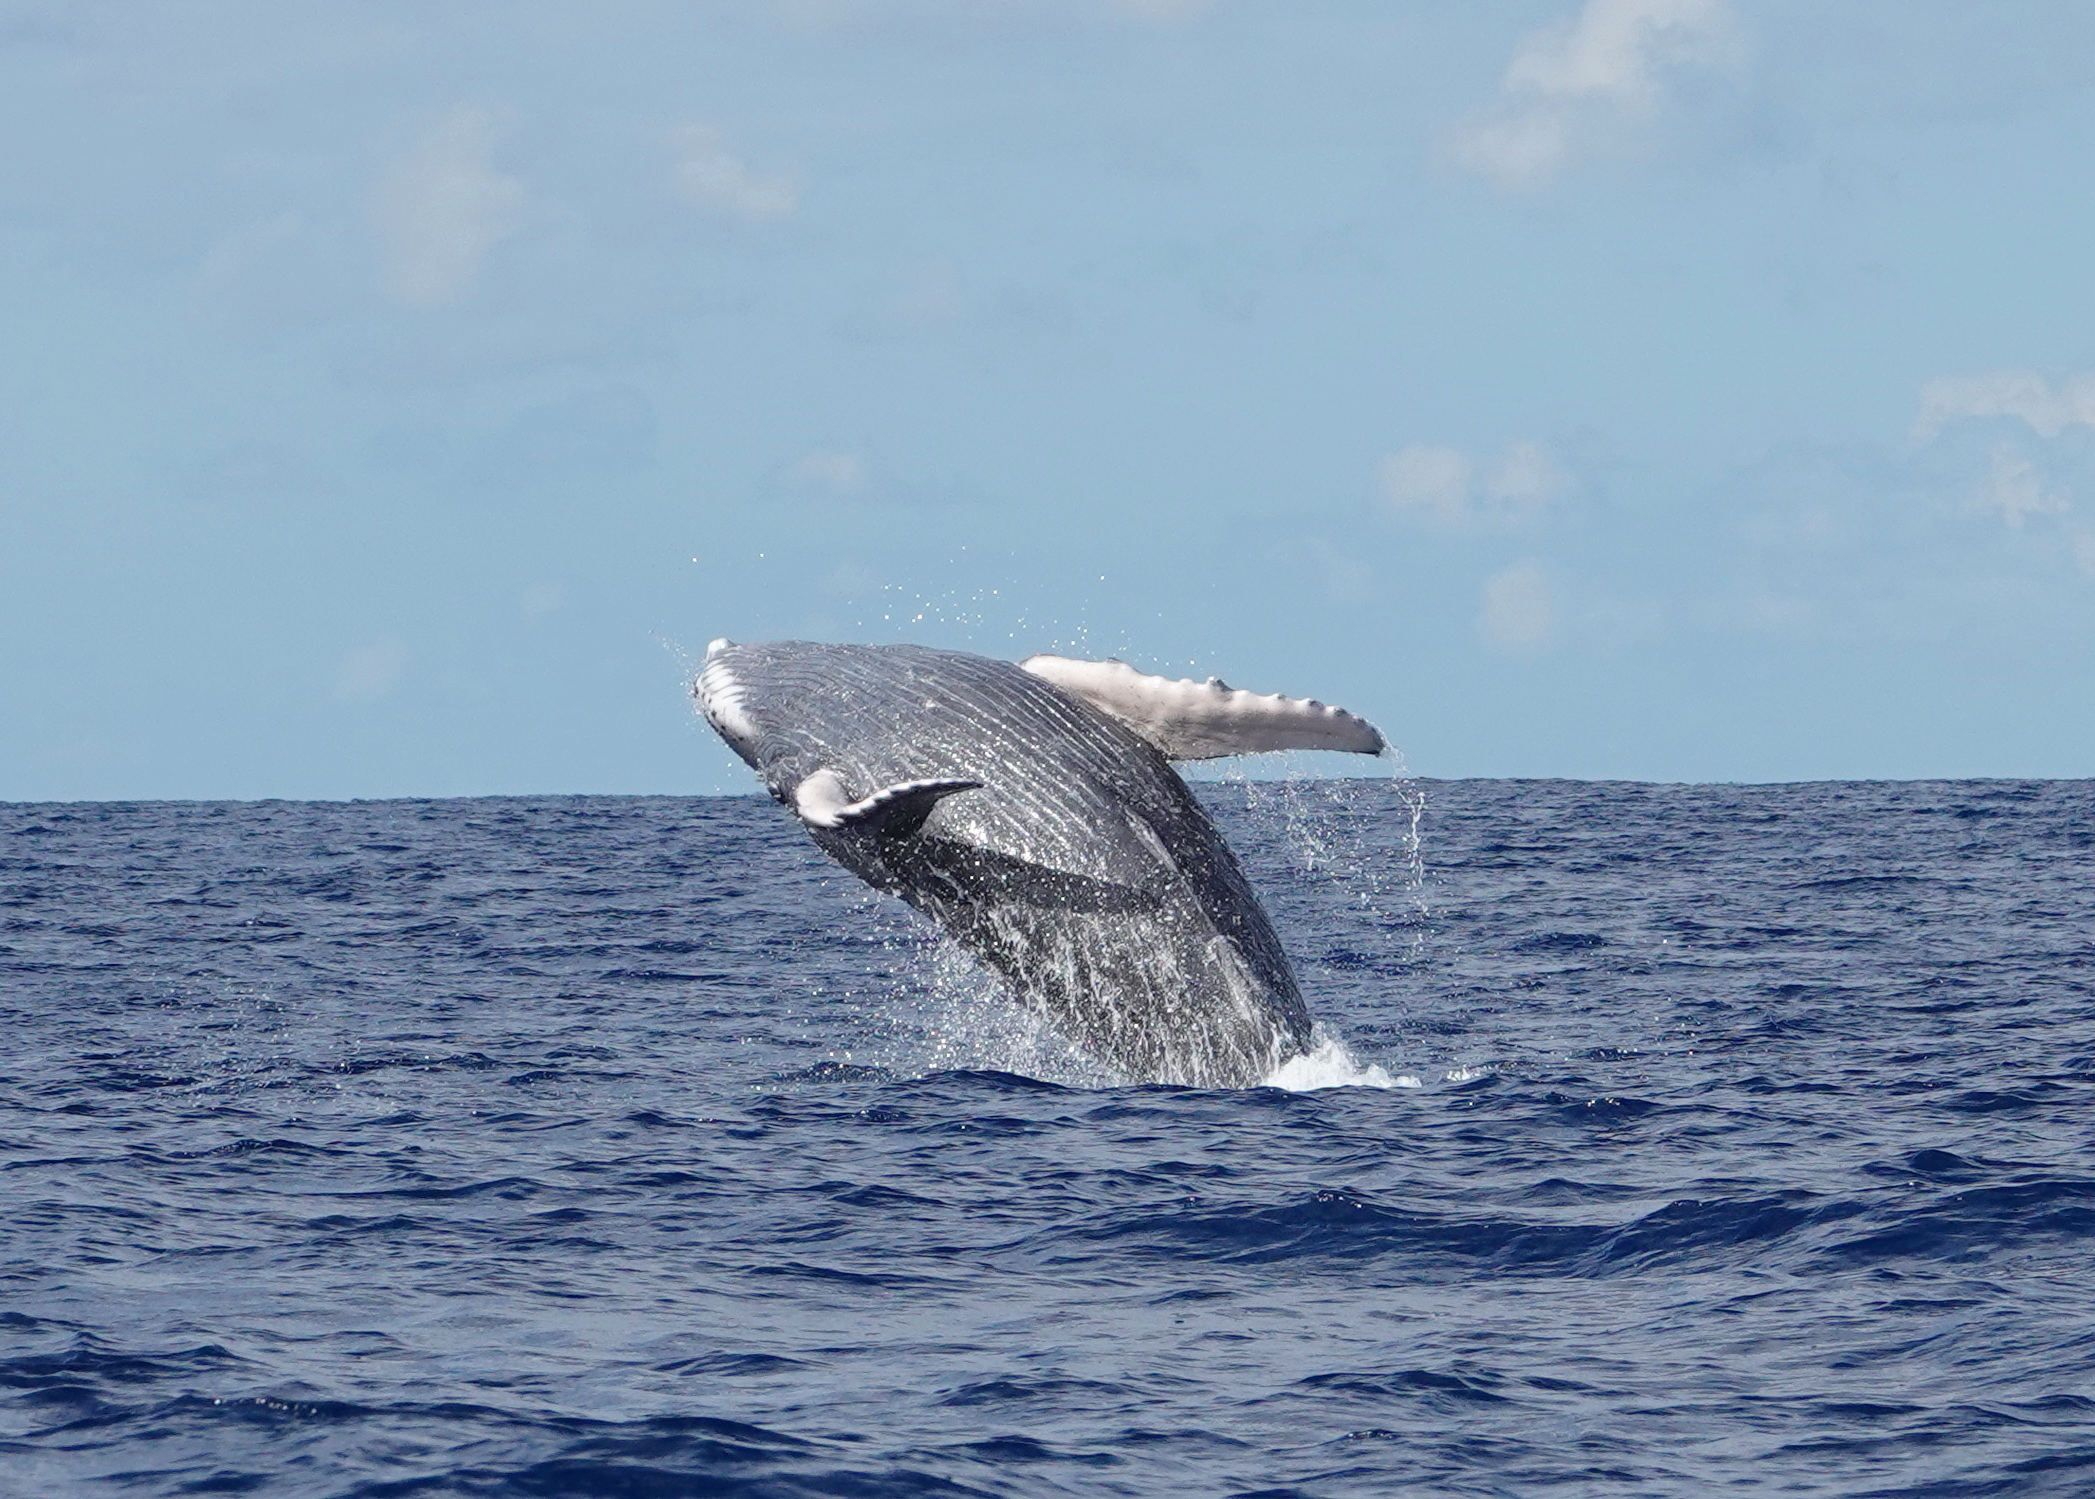 We see more humpback whales this year!